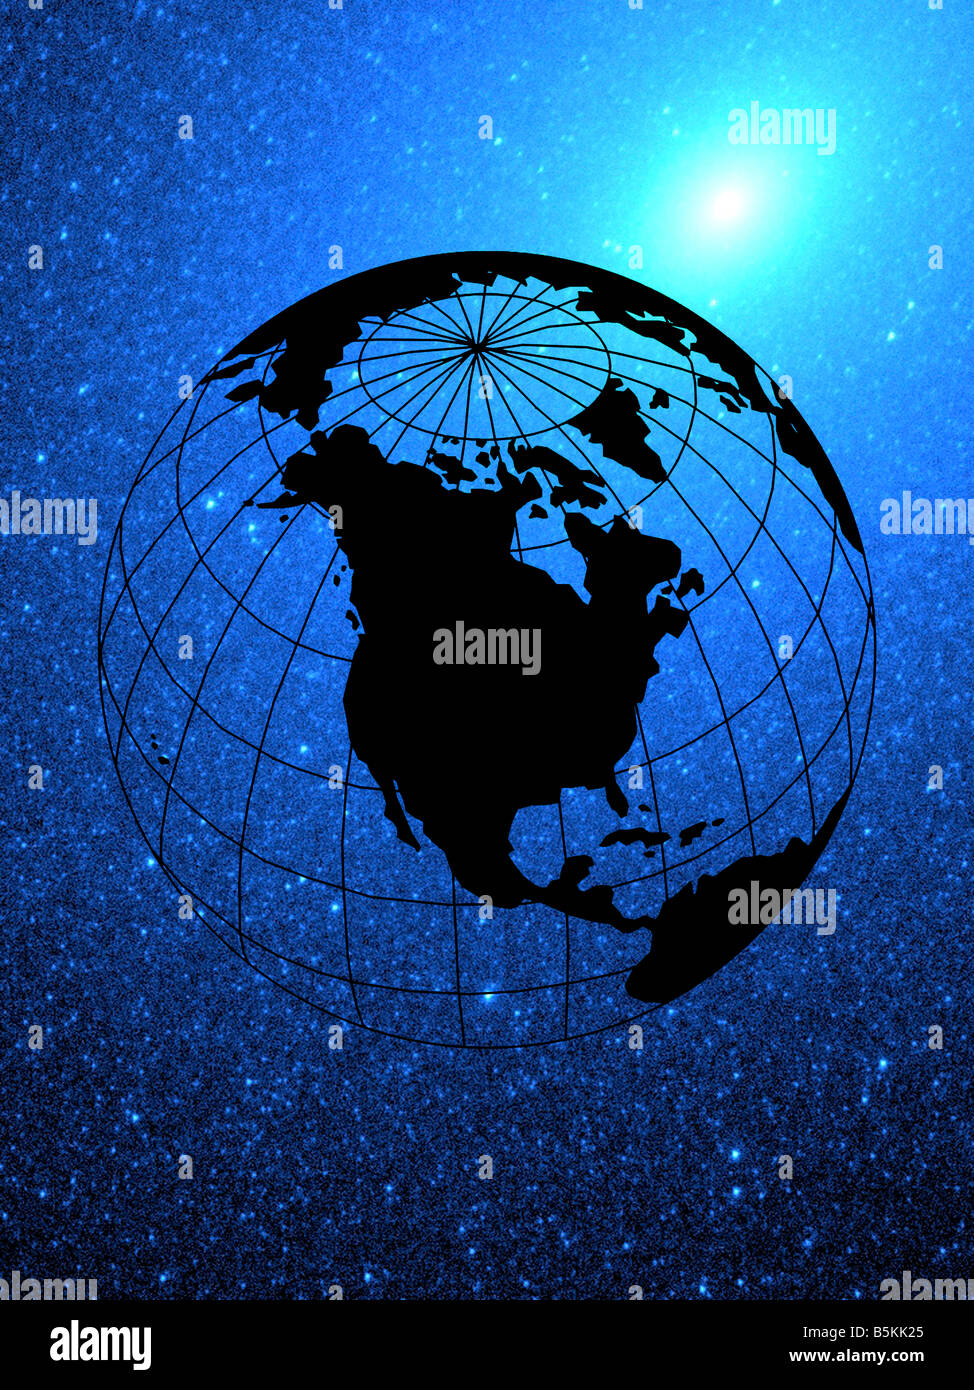 vector illustration of globe and Western Hemisphere composited on starry sky - Stock Image